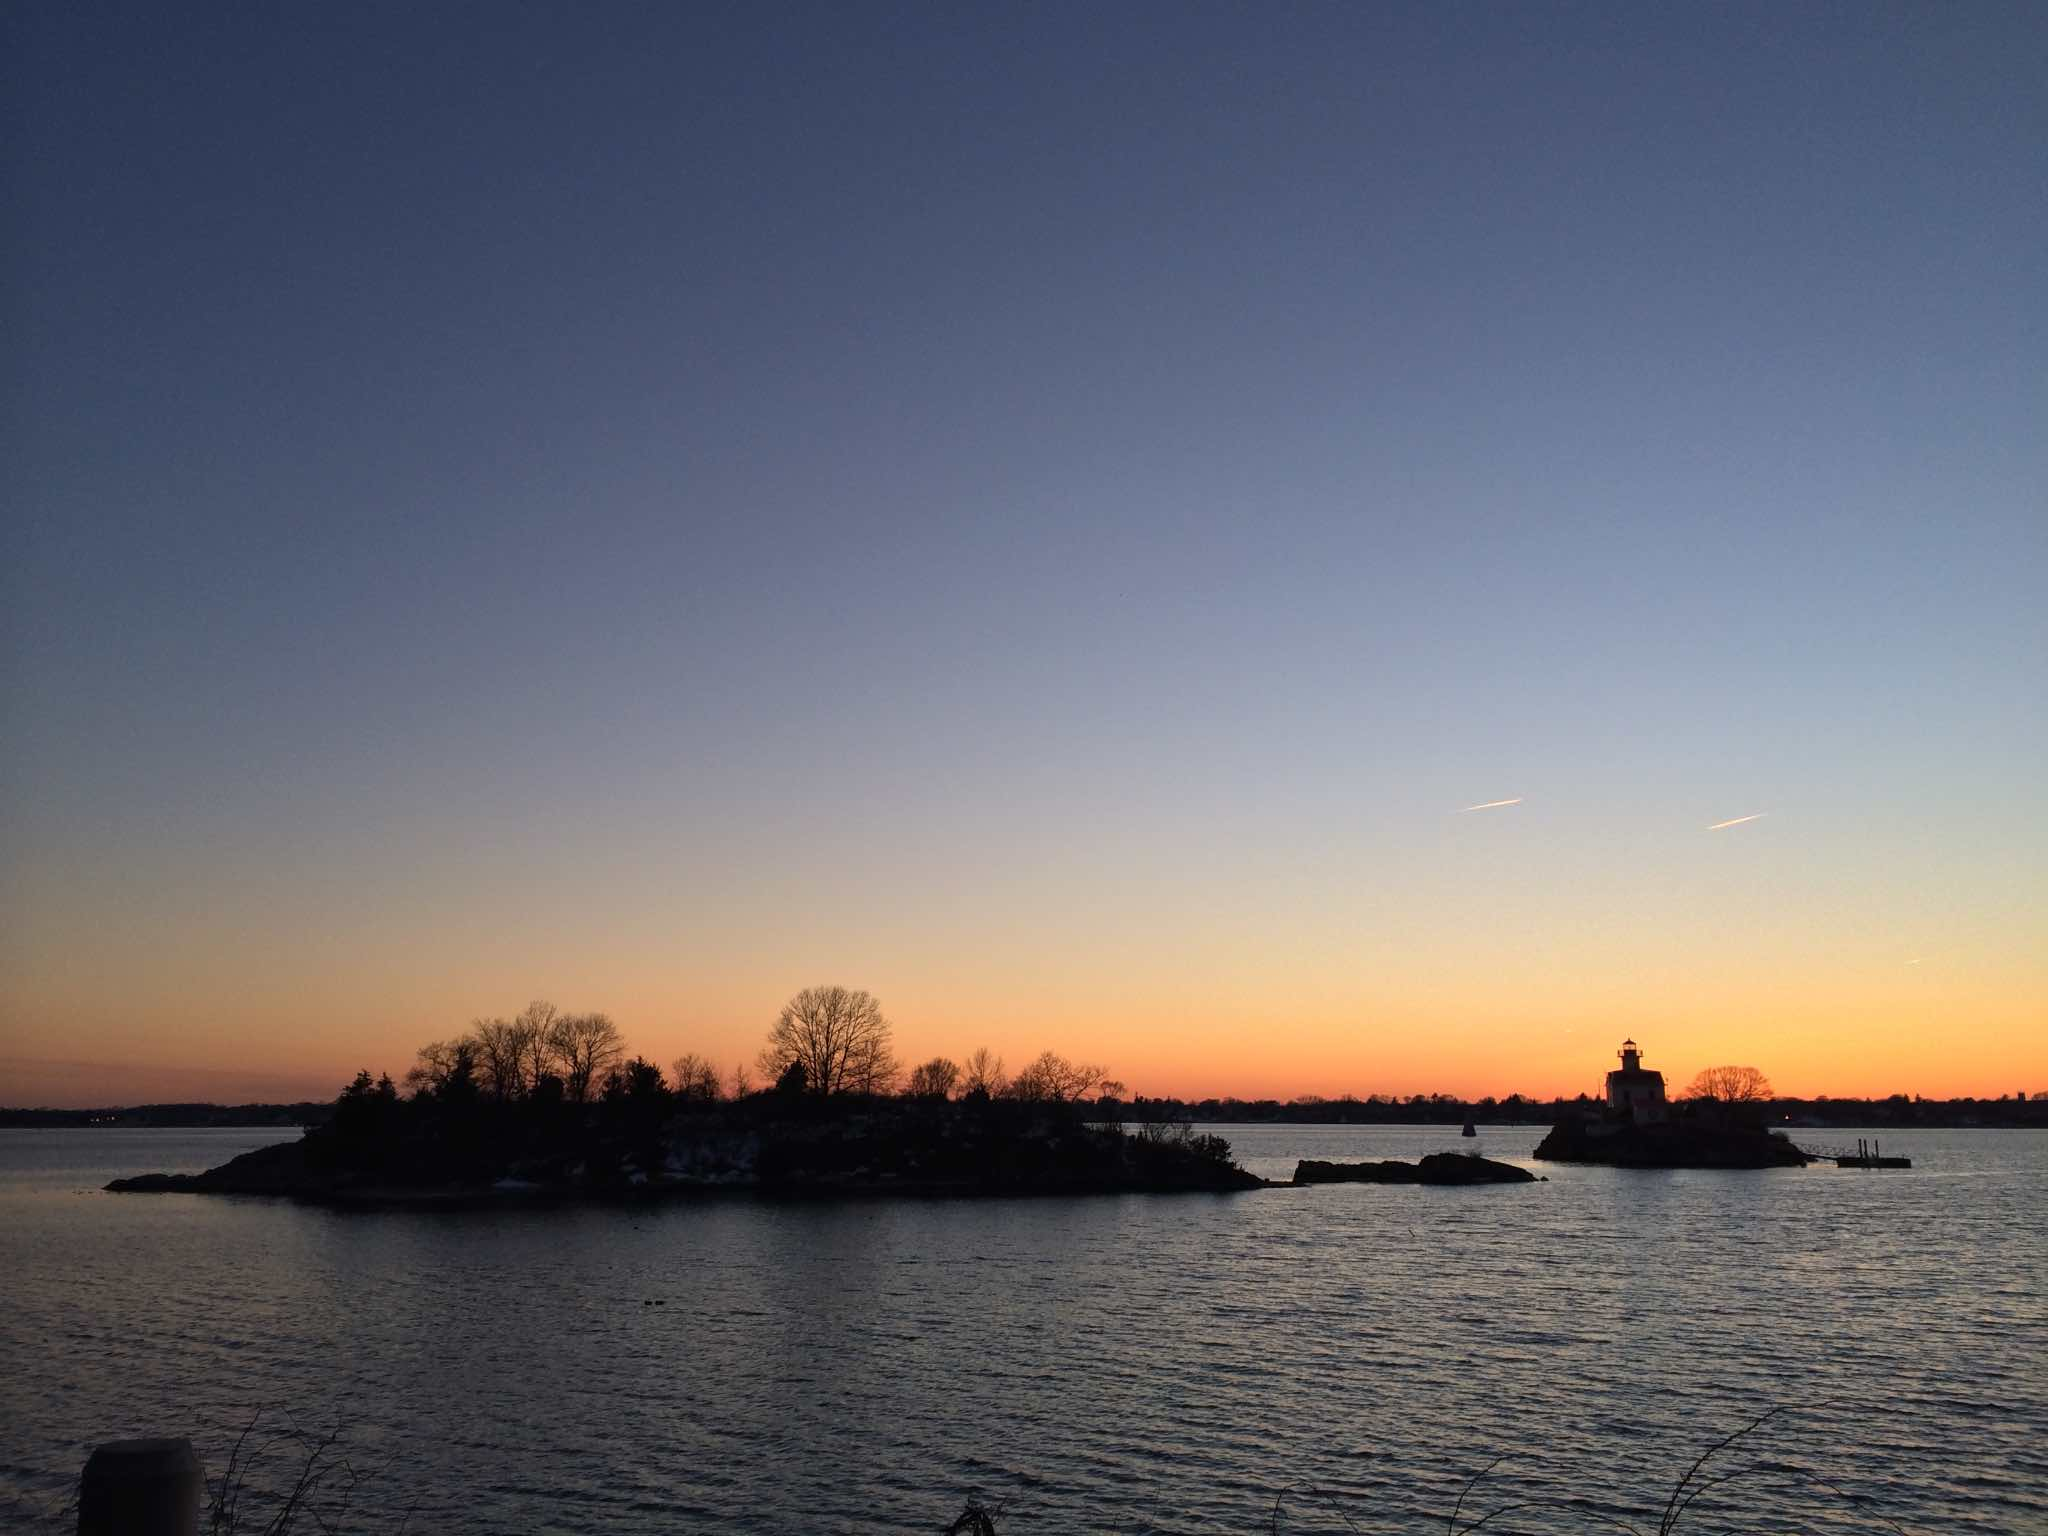 Sunset from the East Bay Bike Path, featuring the Pomham Rocks Lighthouse